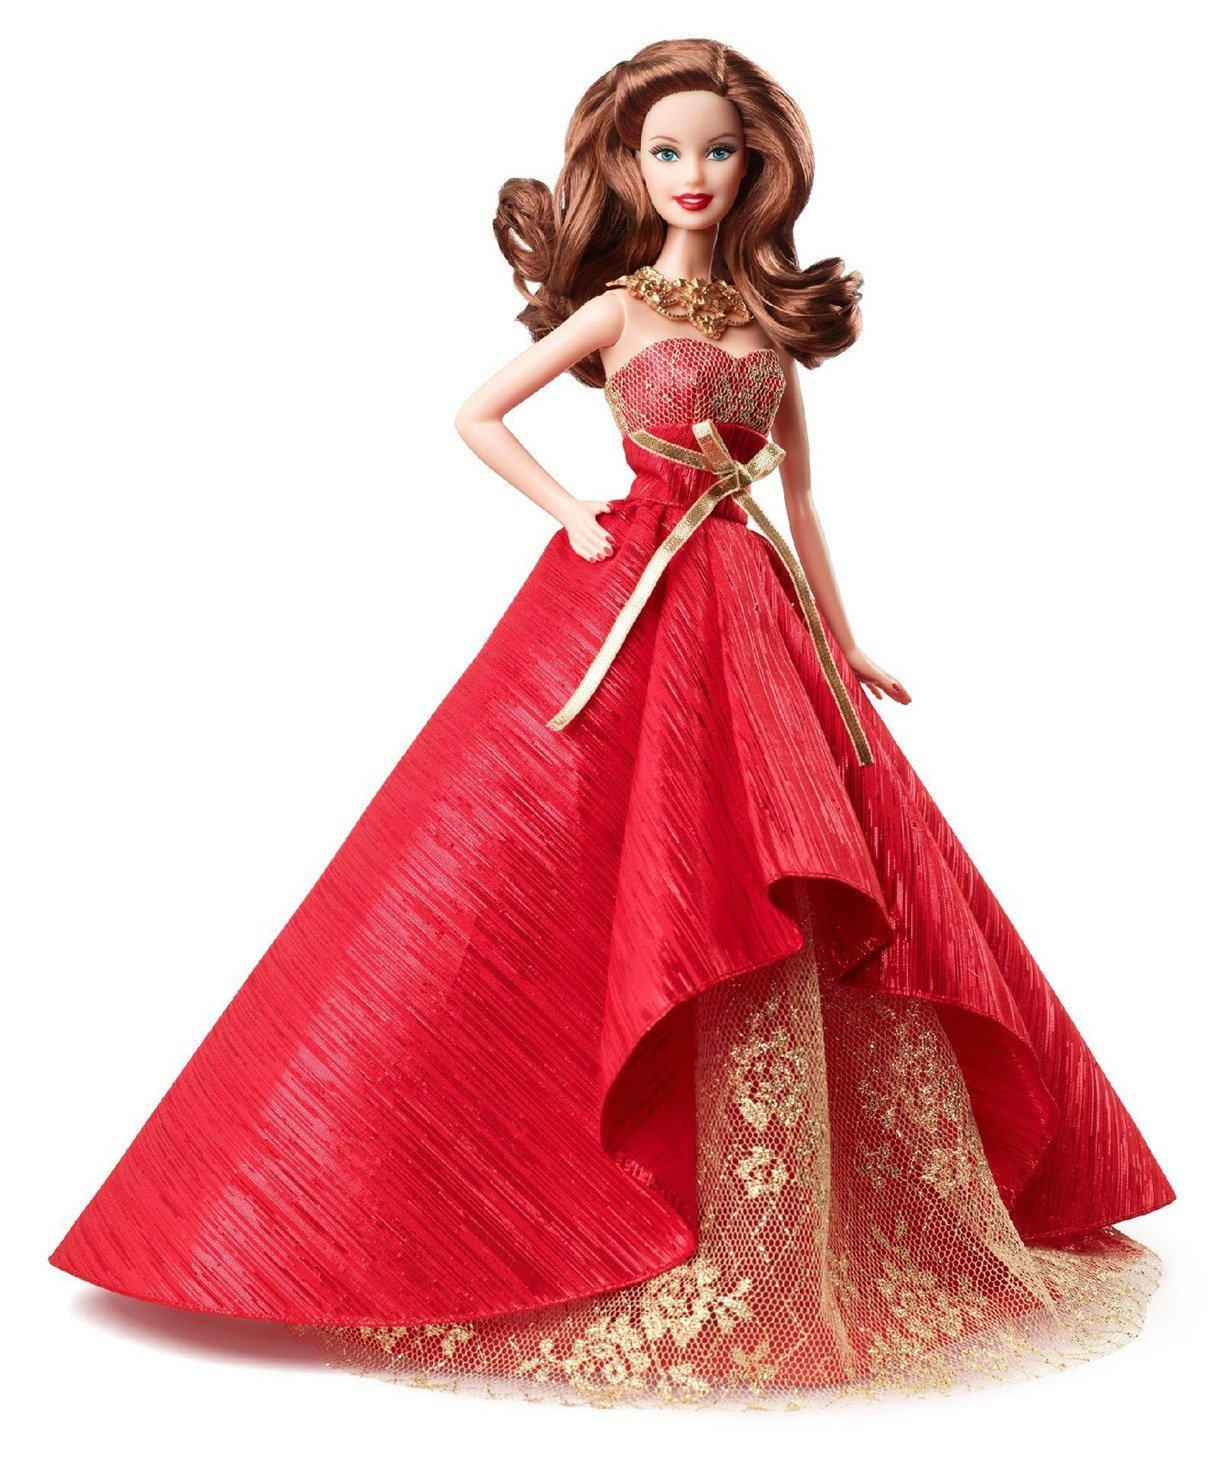 Barbie Brunette [並行輸入品] Collector B074TJH15X 2014 Holiday Doll Brunette [並行輸入品] B074TJH15X, ヨシキグン:b852468f --- arvoreazul.com.br